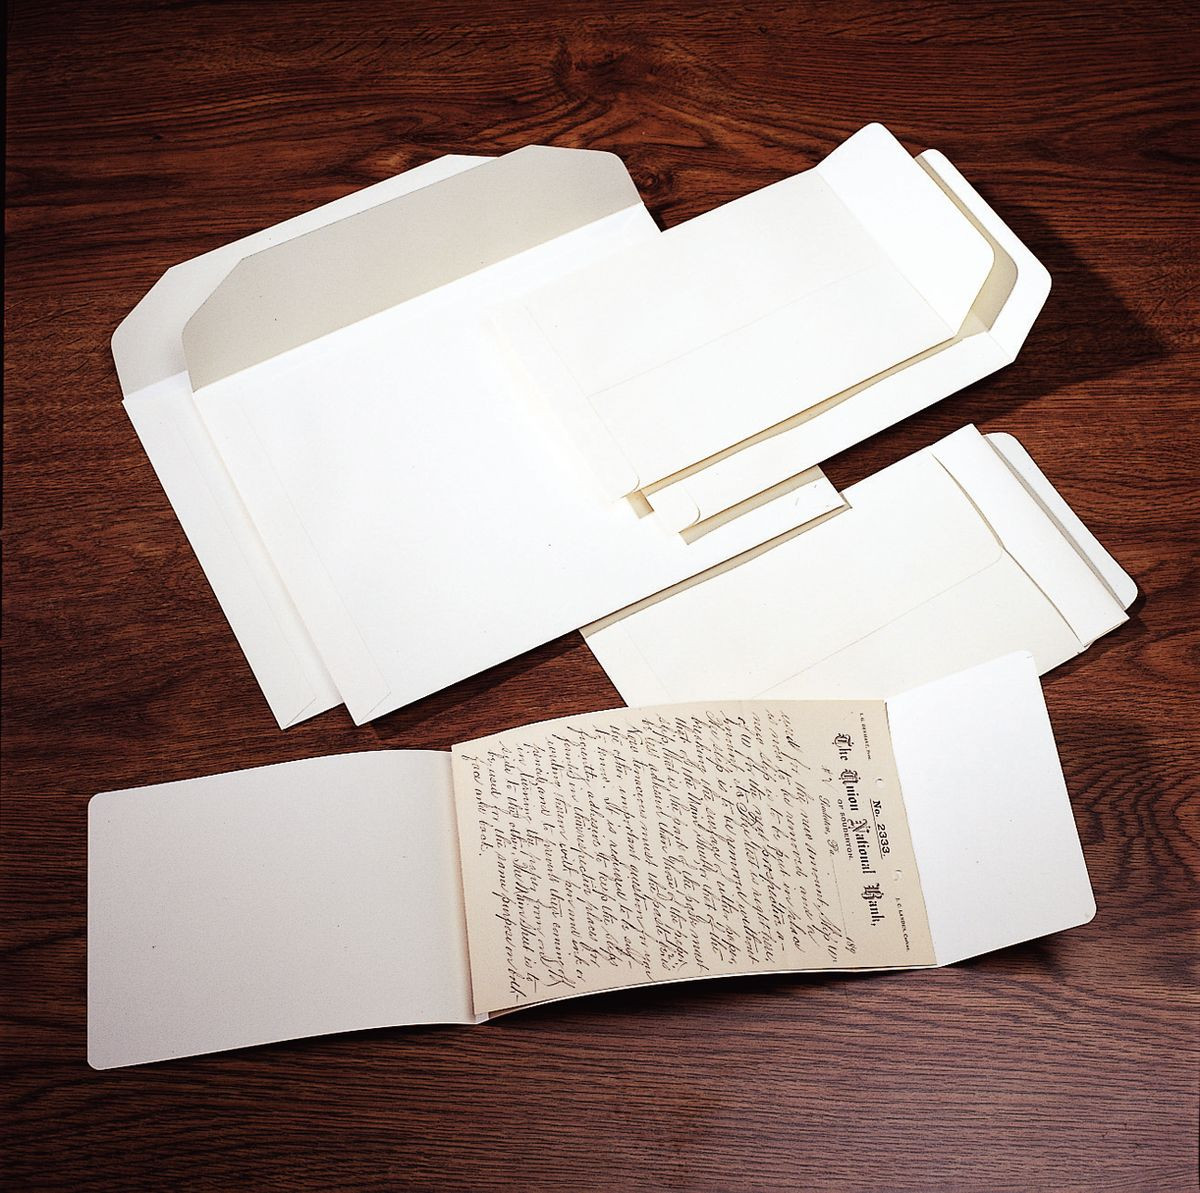 Archival Envelopes Paper Gresswell Specialist Resources For Libraries